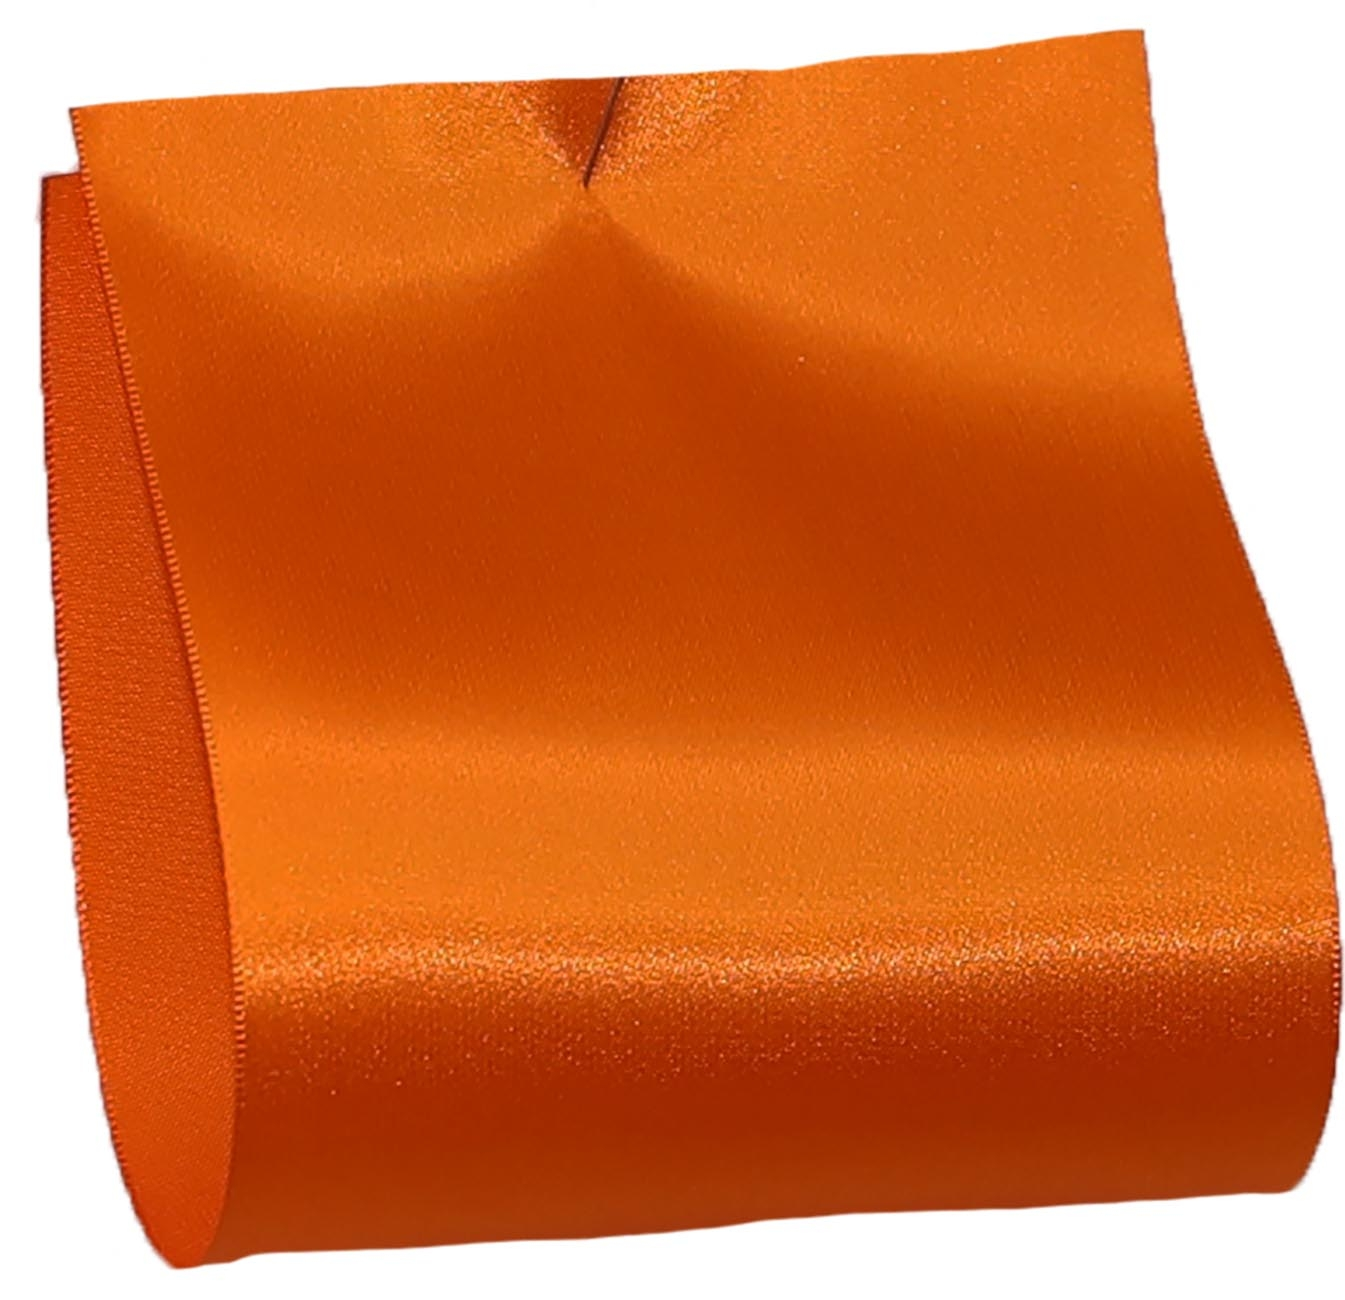 100mm wide satin ribbon in orange